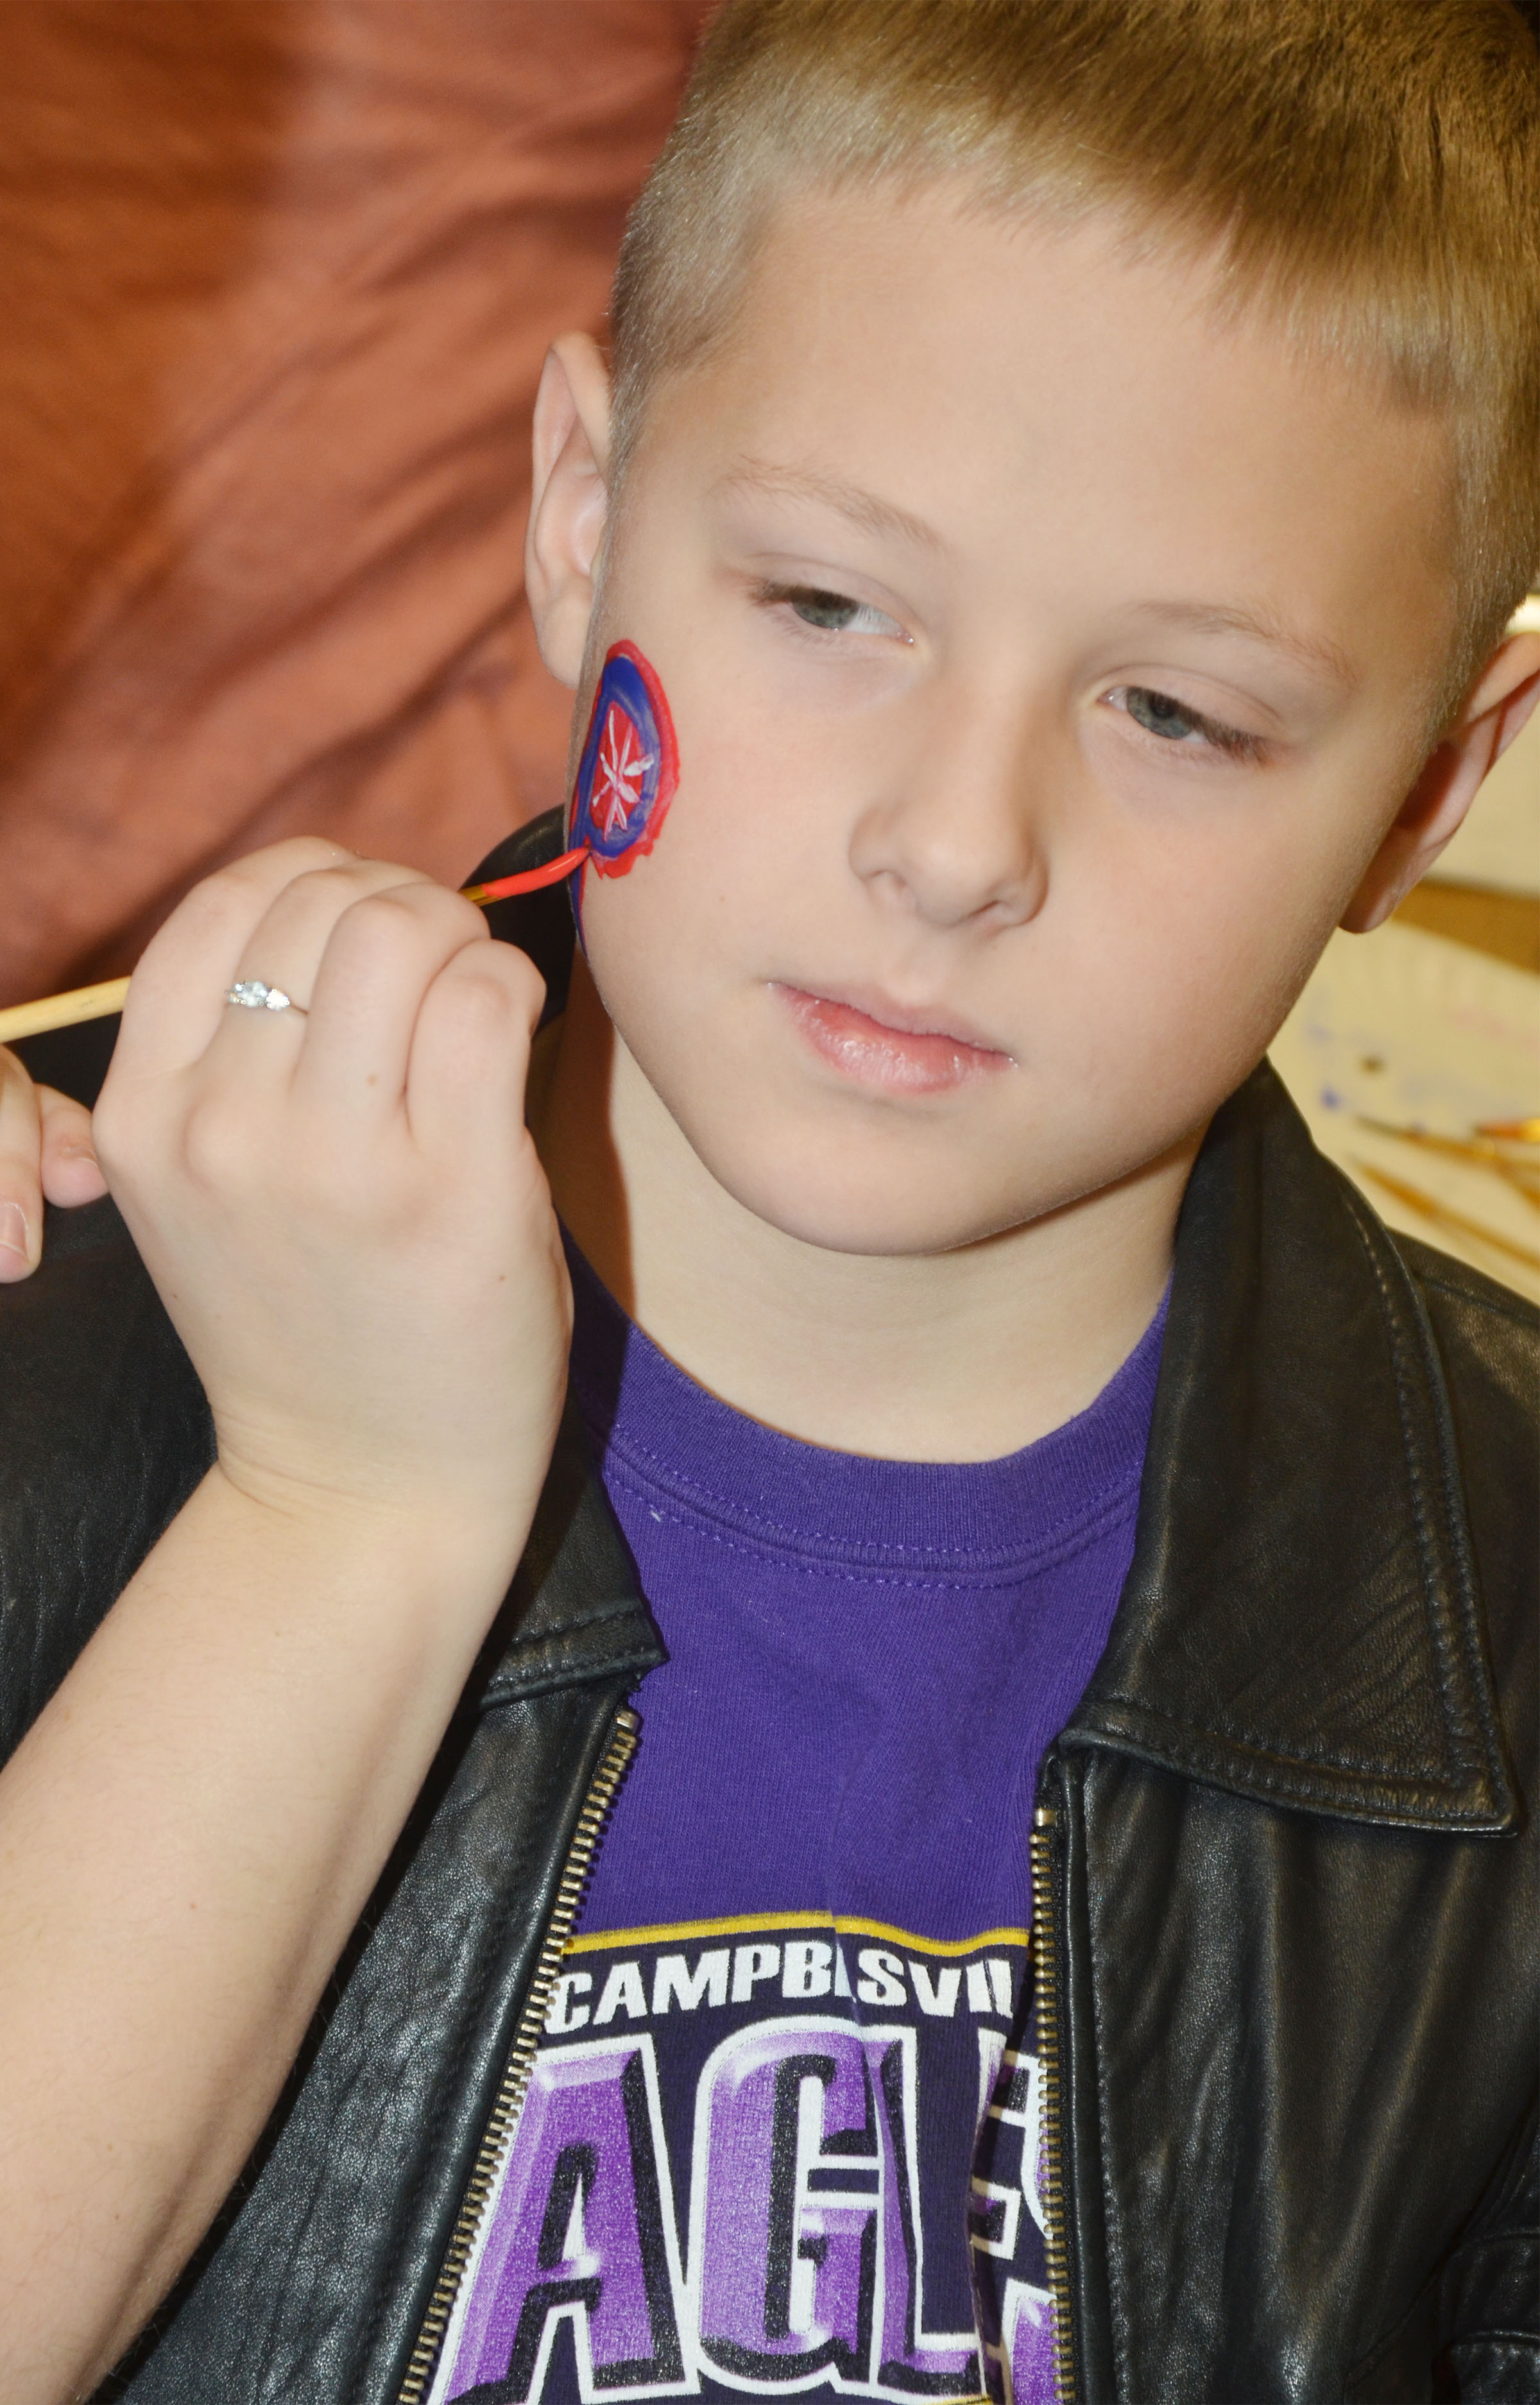 CES second-grader Evan Lockridge gets a New England Patriots logo painted on his cheek.